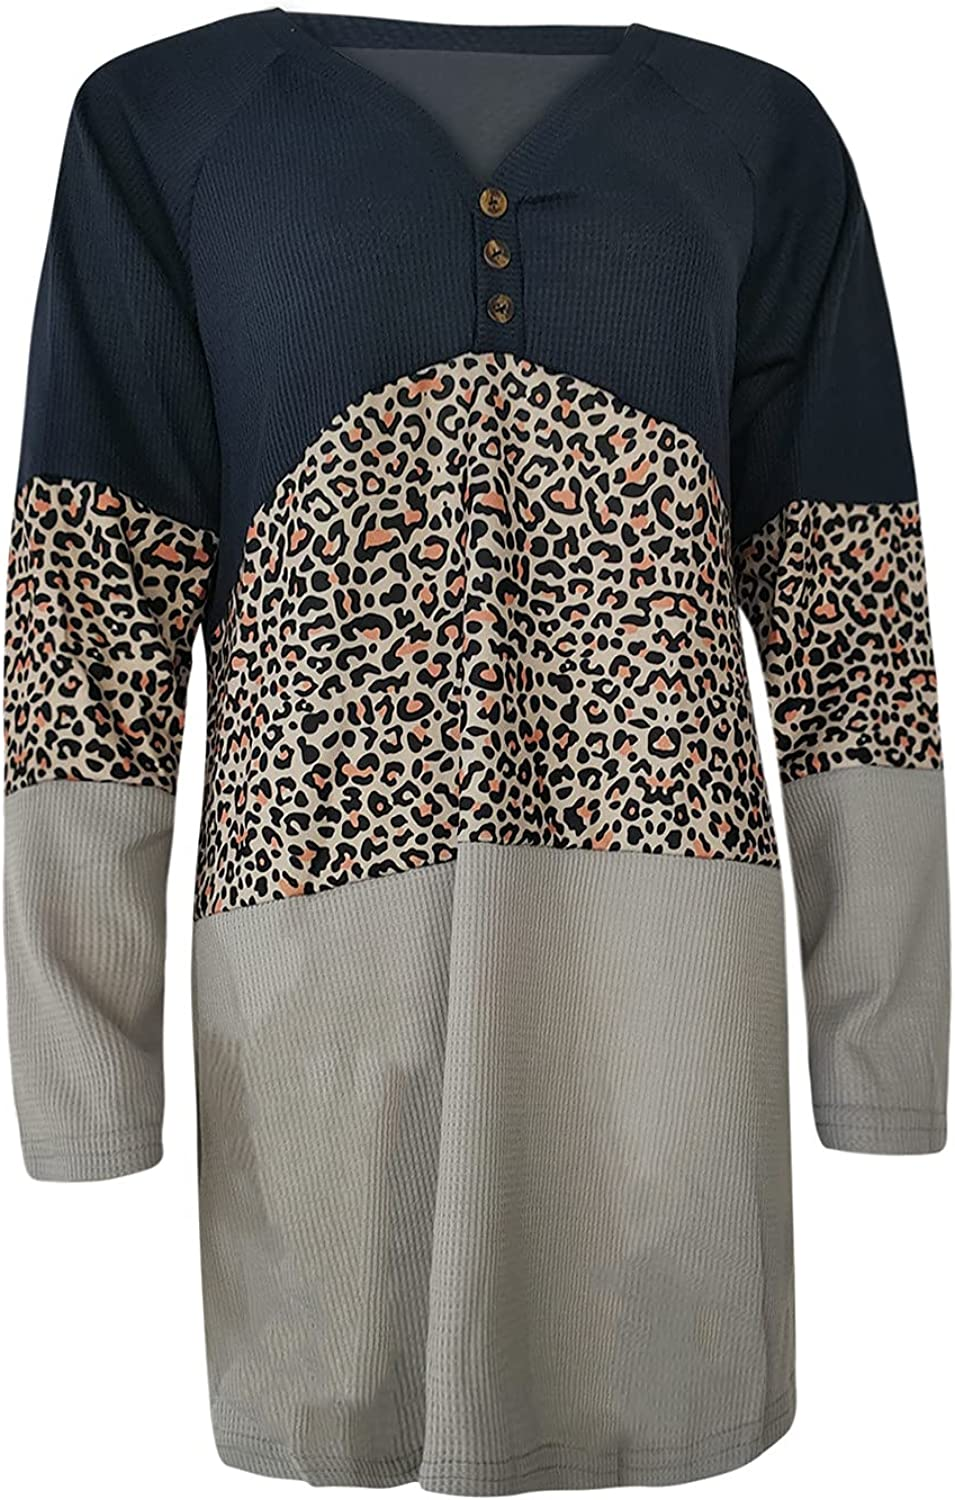 Long Sleeve Shirts for Women Sexy V Neck Leopard Tops Fashion Workout Business Loose Blouse for Autumn